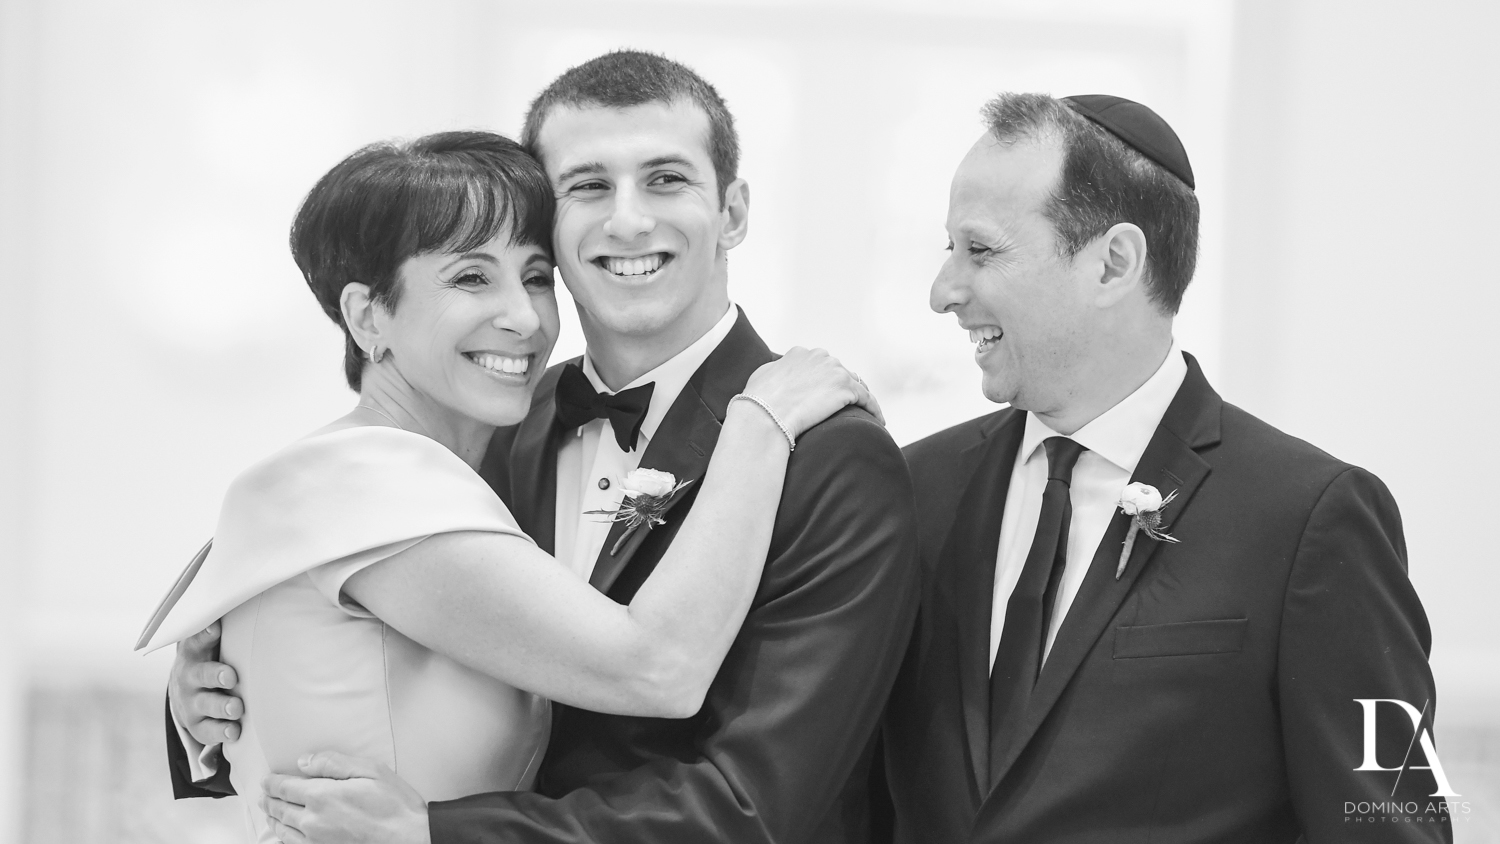 B&W photos at Luxury Summer Wedding at The Colony Hotel Palm Beach by Domino Arts Photography